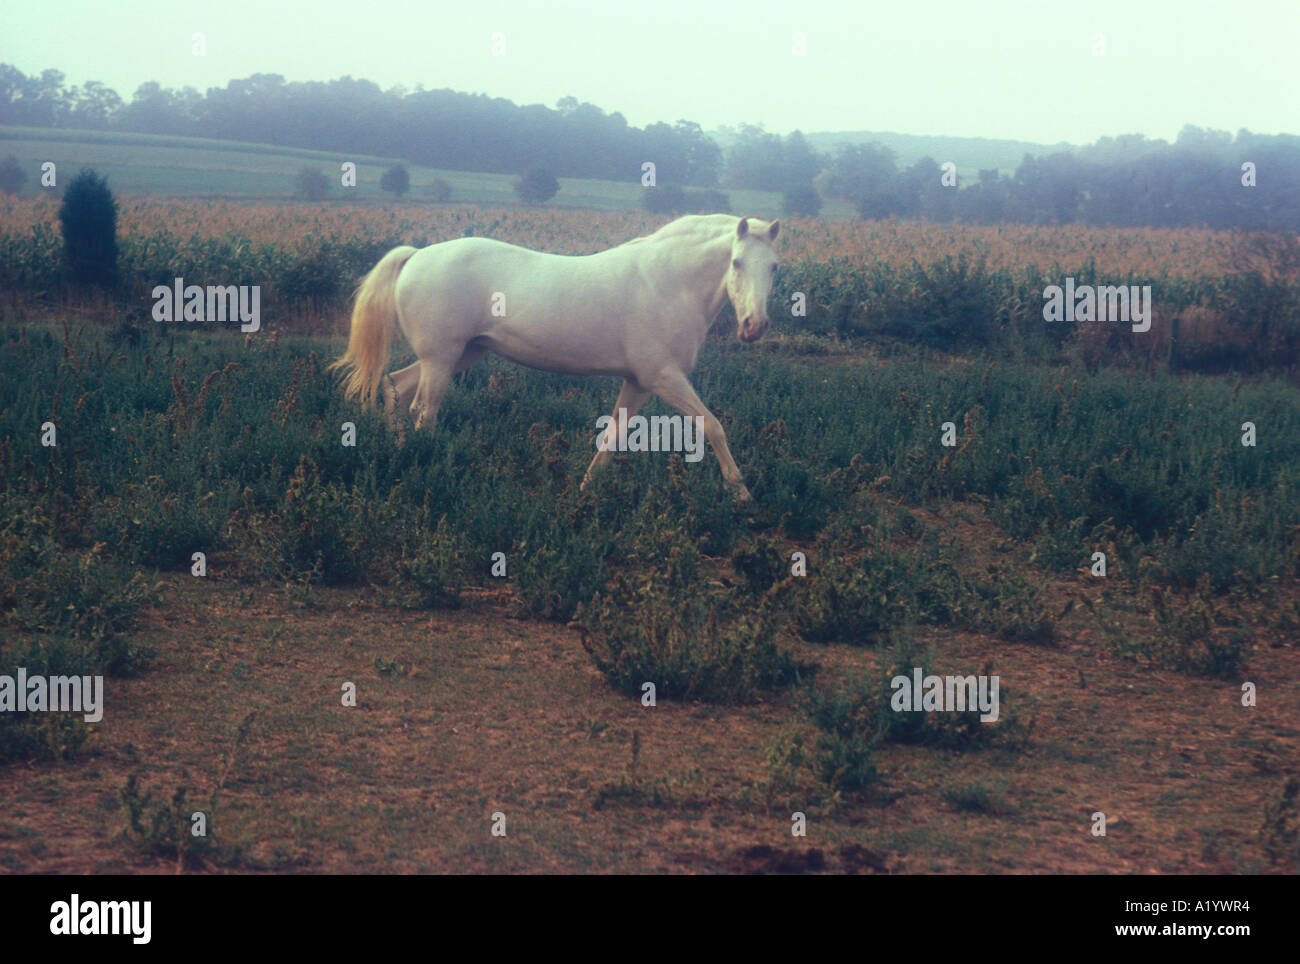 Mysterious White Mystery Horse Early Morning Haze Fantasy Stock Photo Alamy